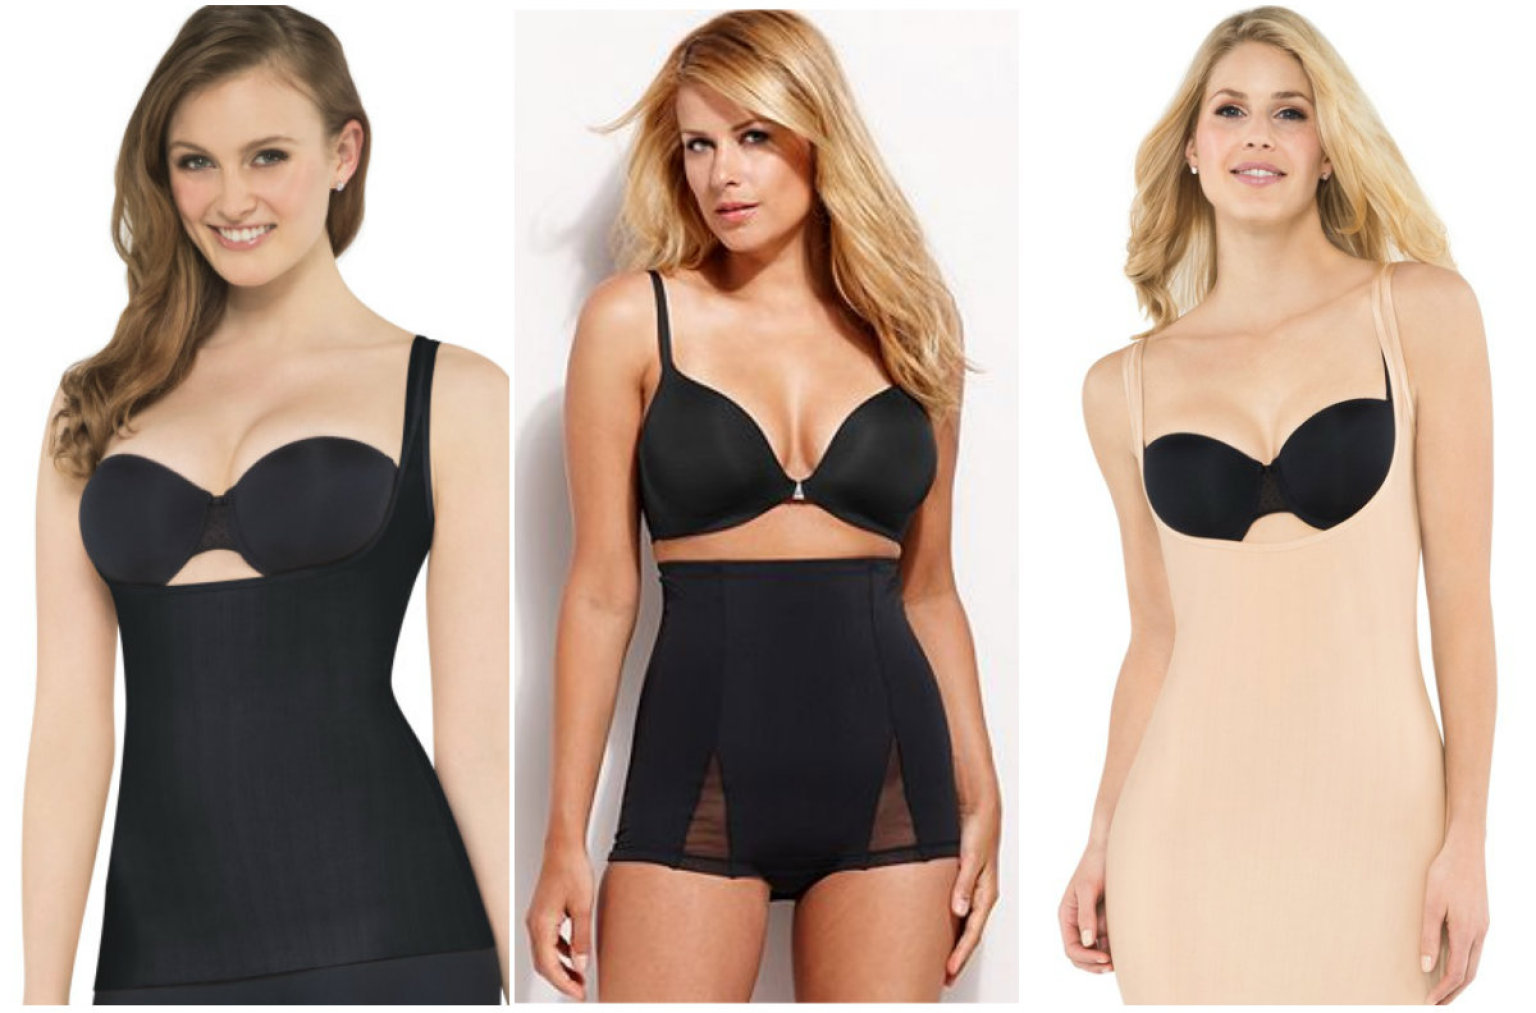 spanx star power line inspired by celebrities photos